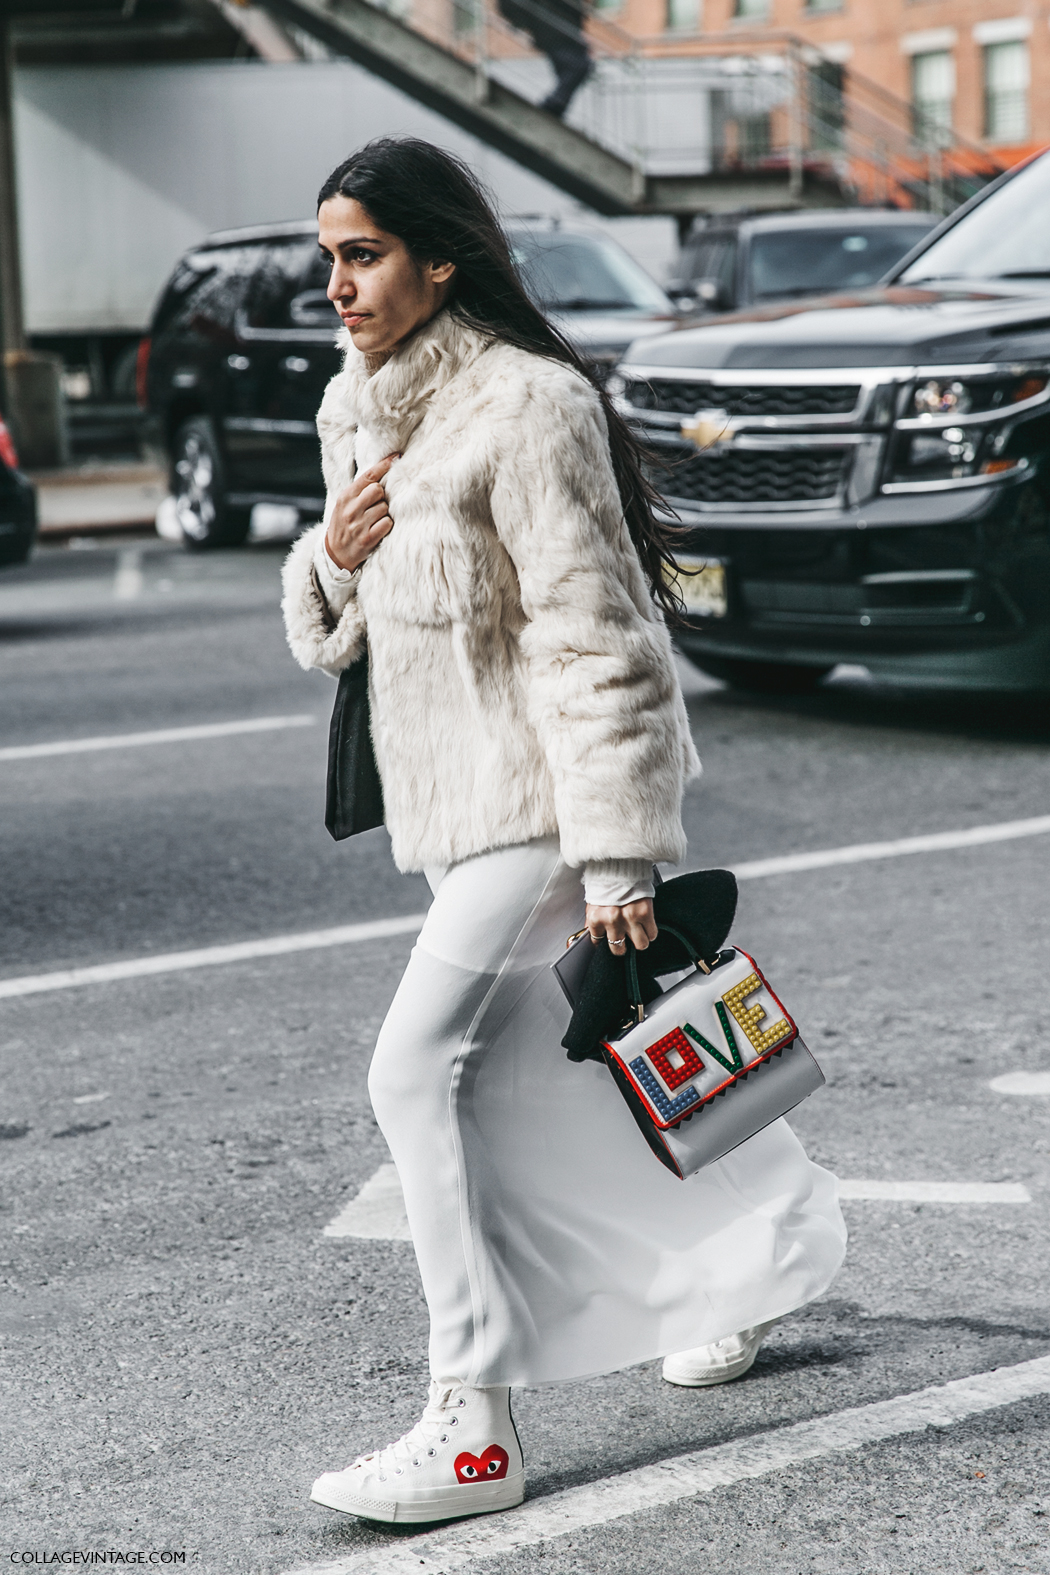 NYFW-New_York_Fashion_Week-Fall_Winter-17-Street_Style-White_Winter-Furry_Coat-